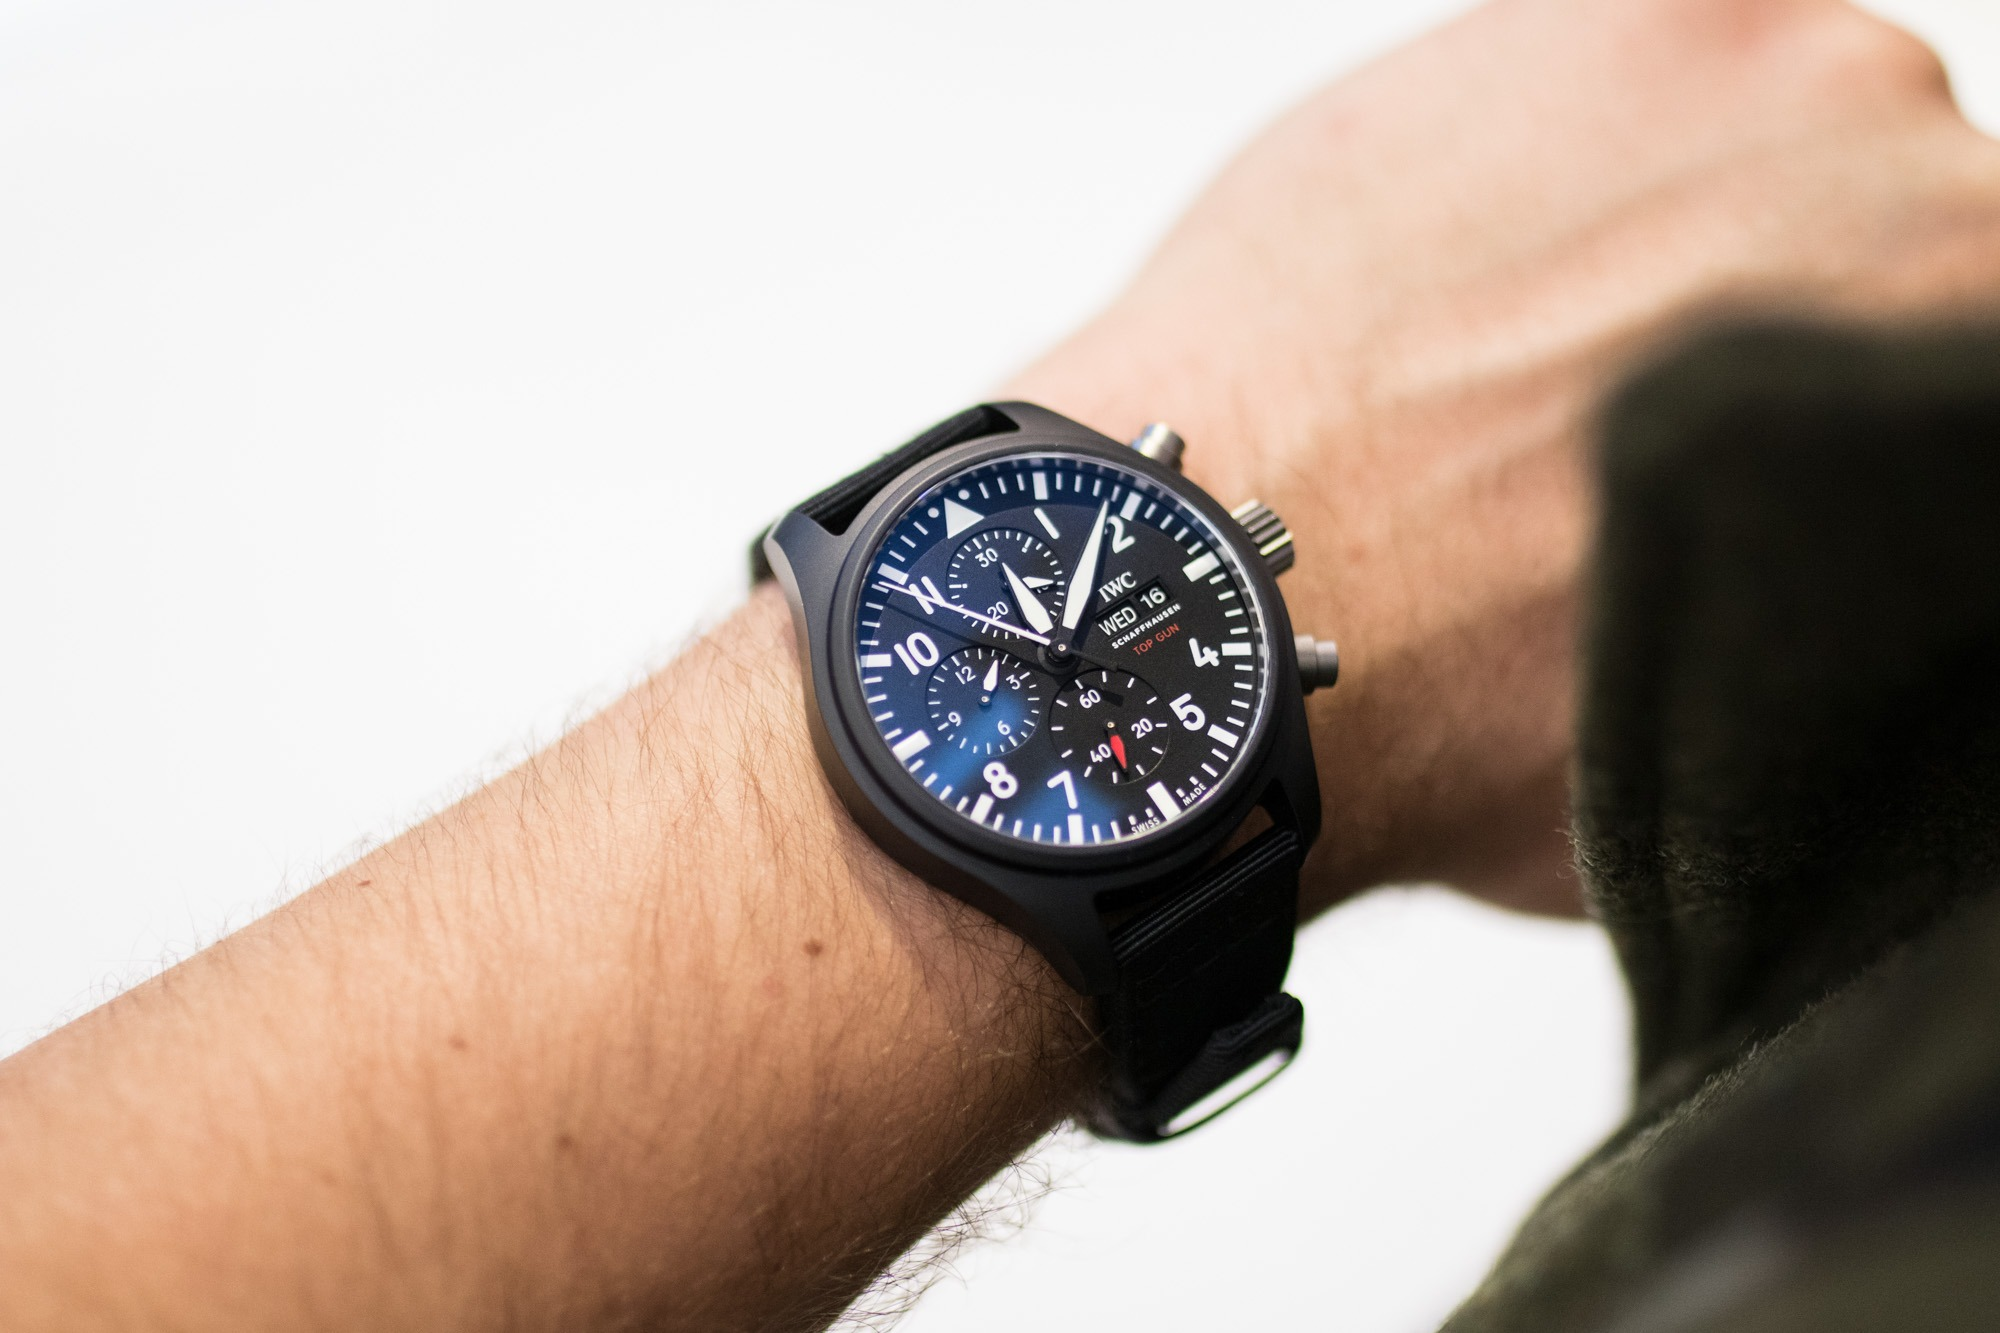 IWC - SIHH 2019 - Montre d'Aviateur Chronographe Top Gun